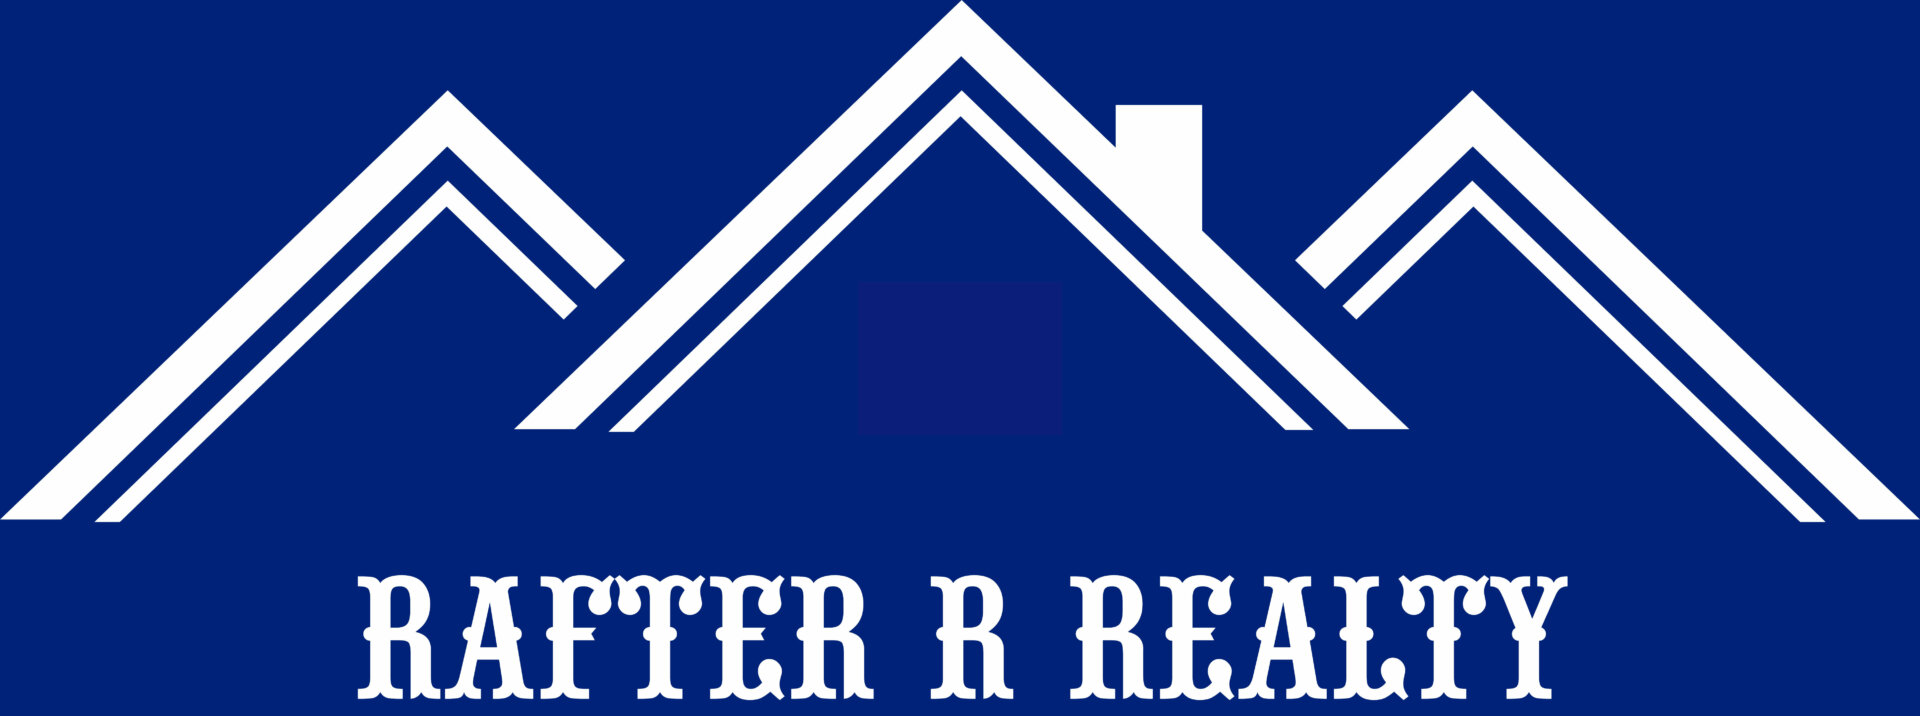 Rafter Realty logo